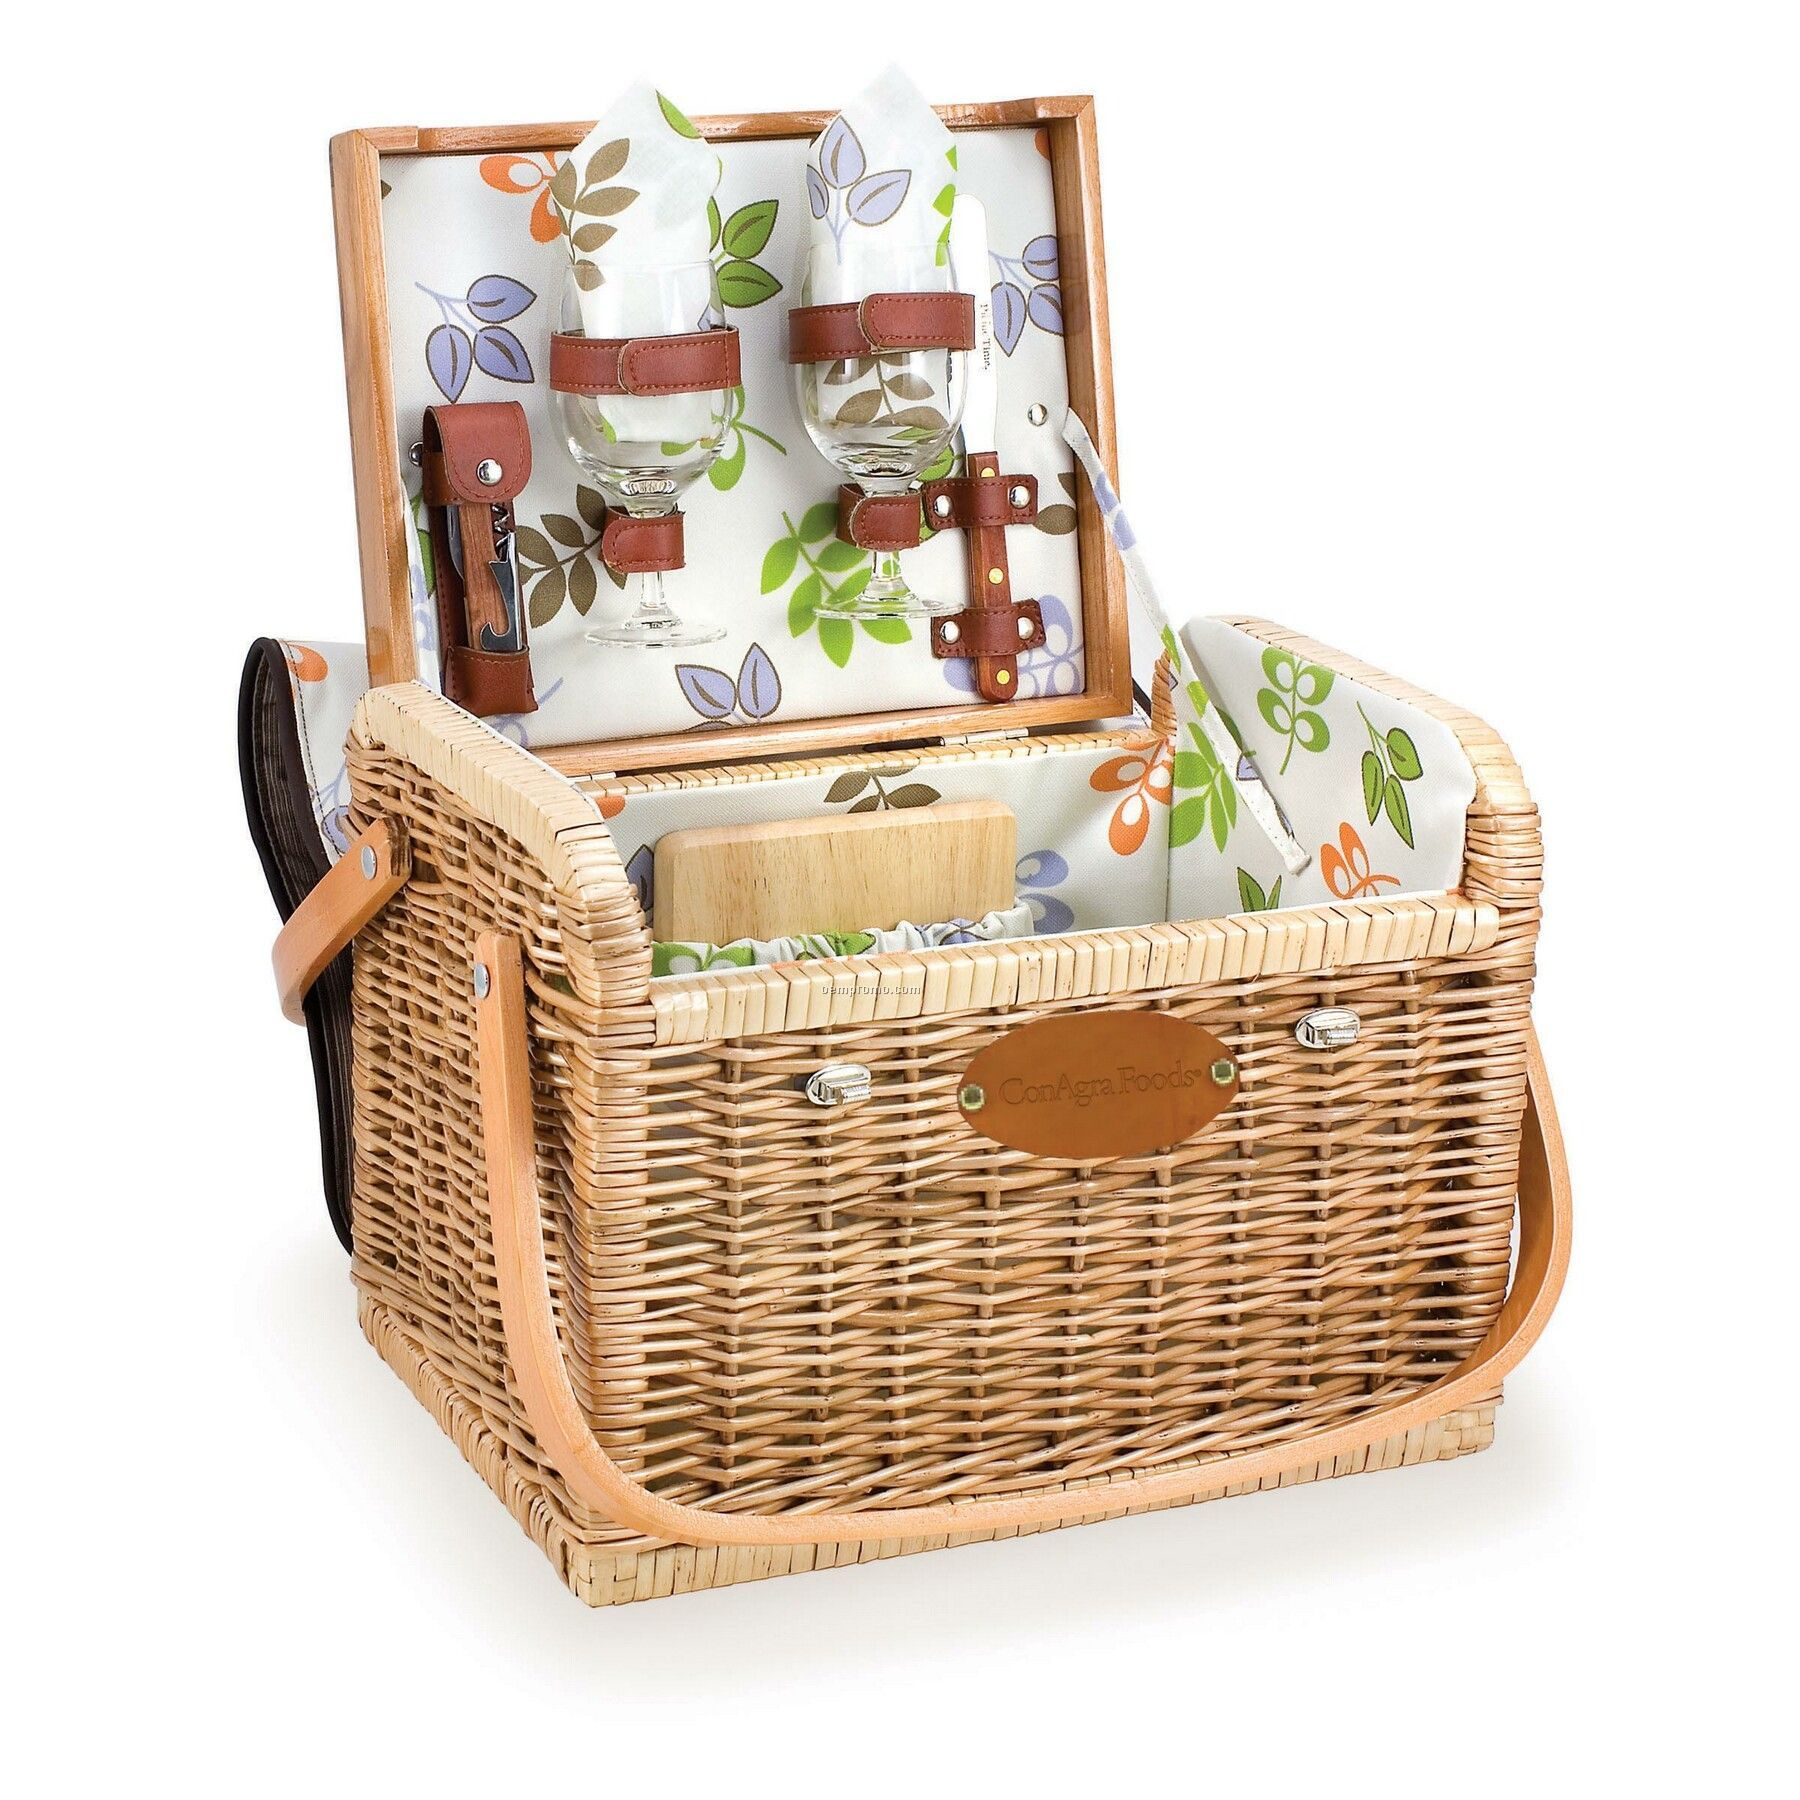 Best Picnic Basket For 2 : Kabrio botanica quot picnic basket w wine cheese svc